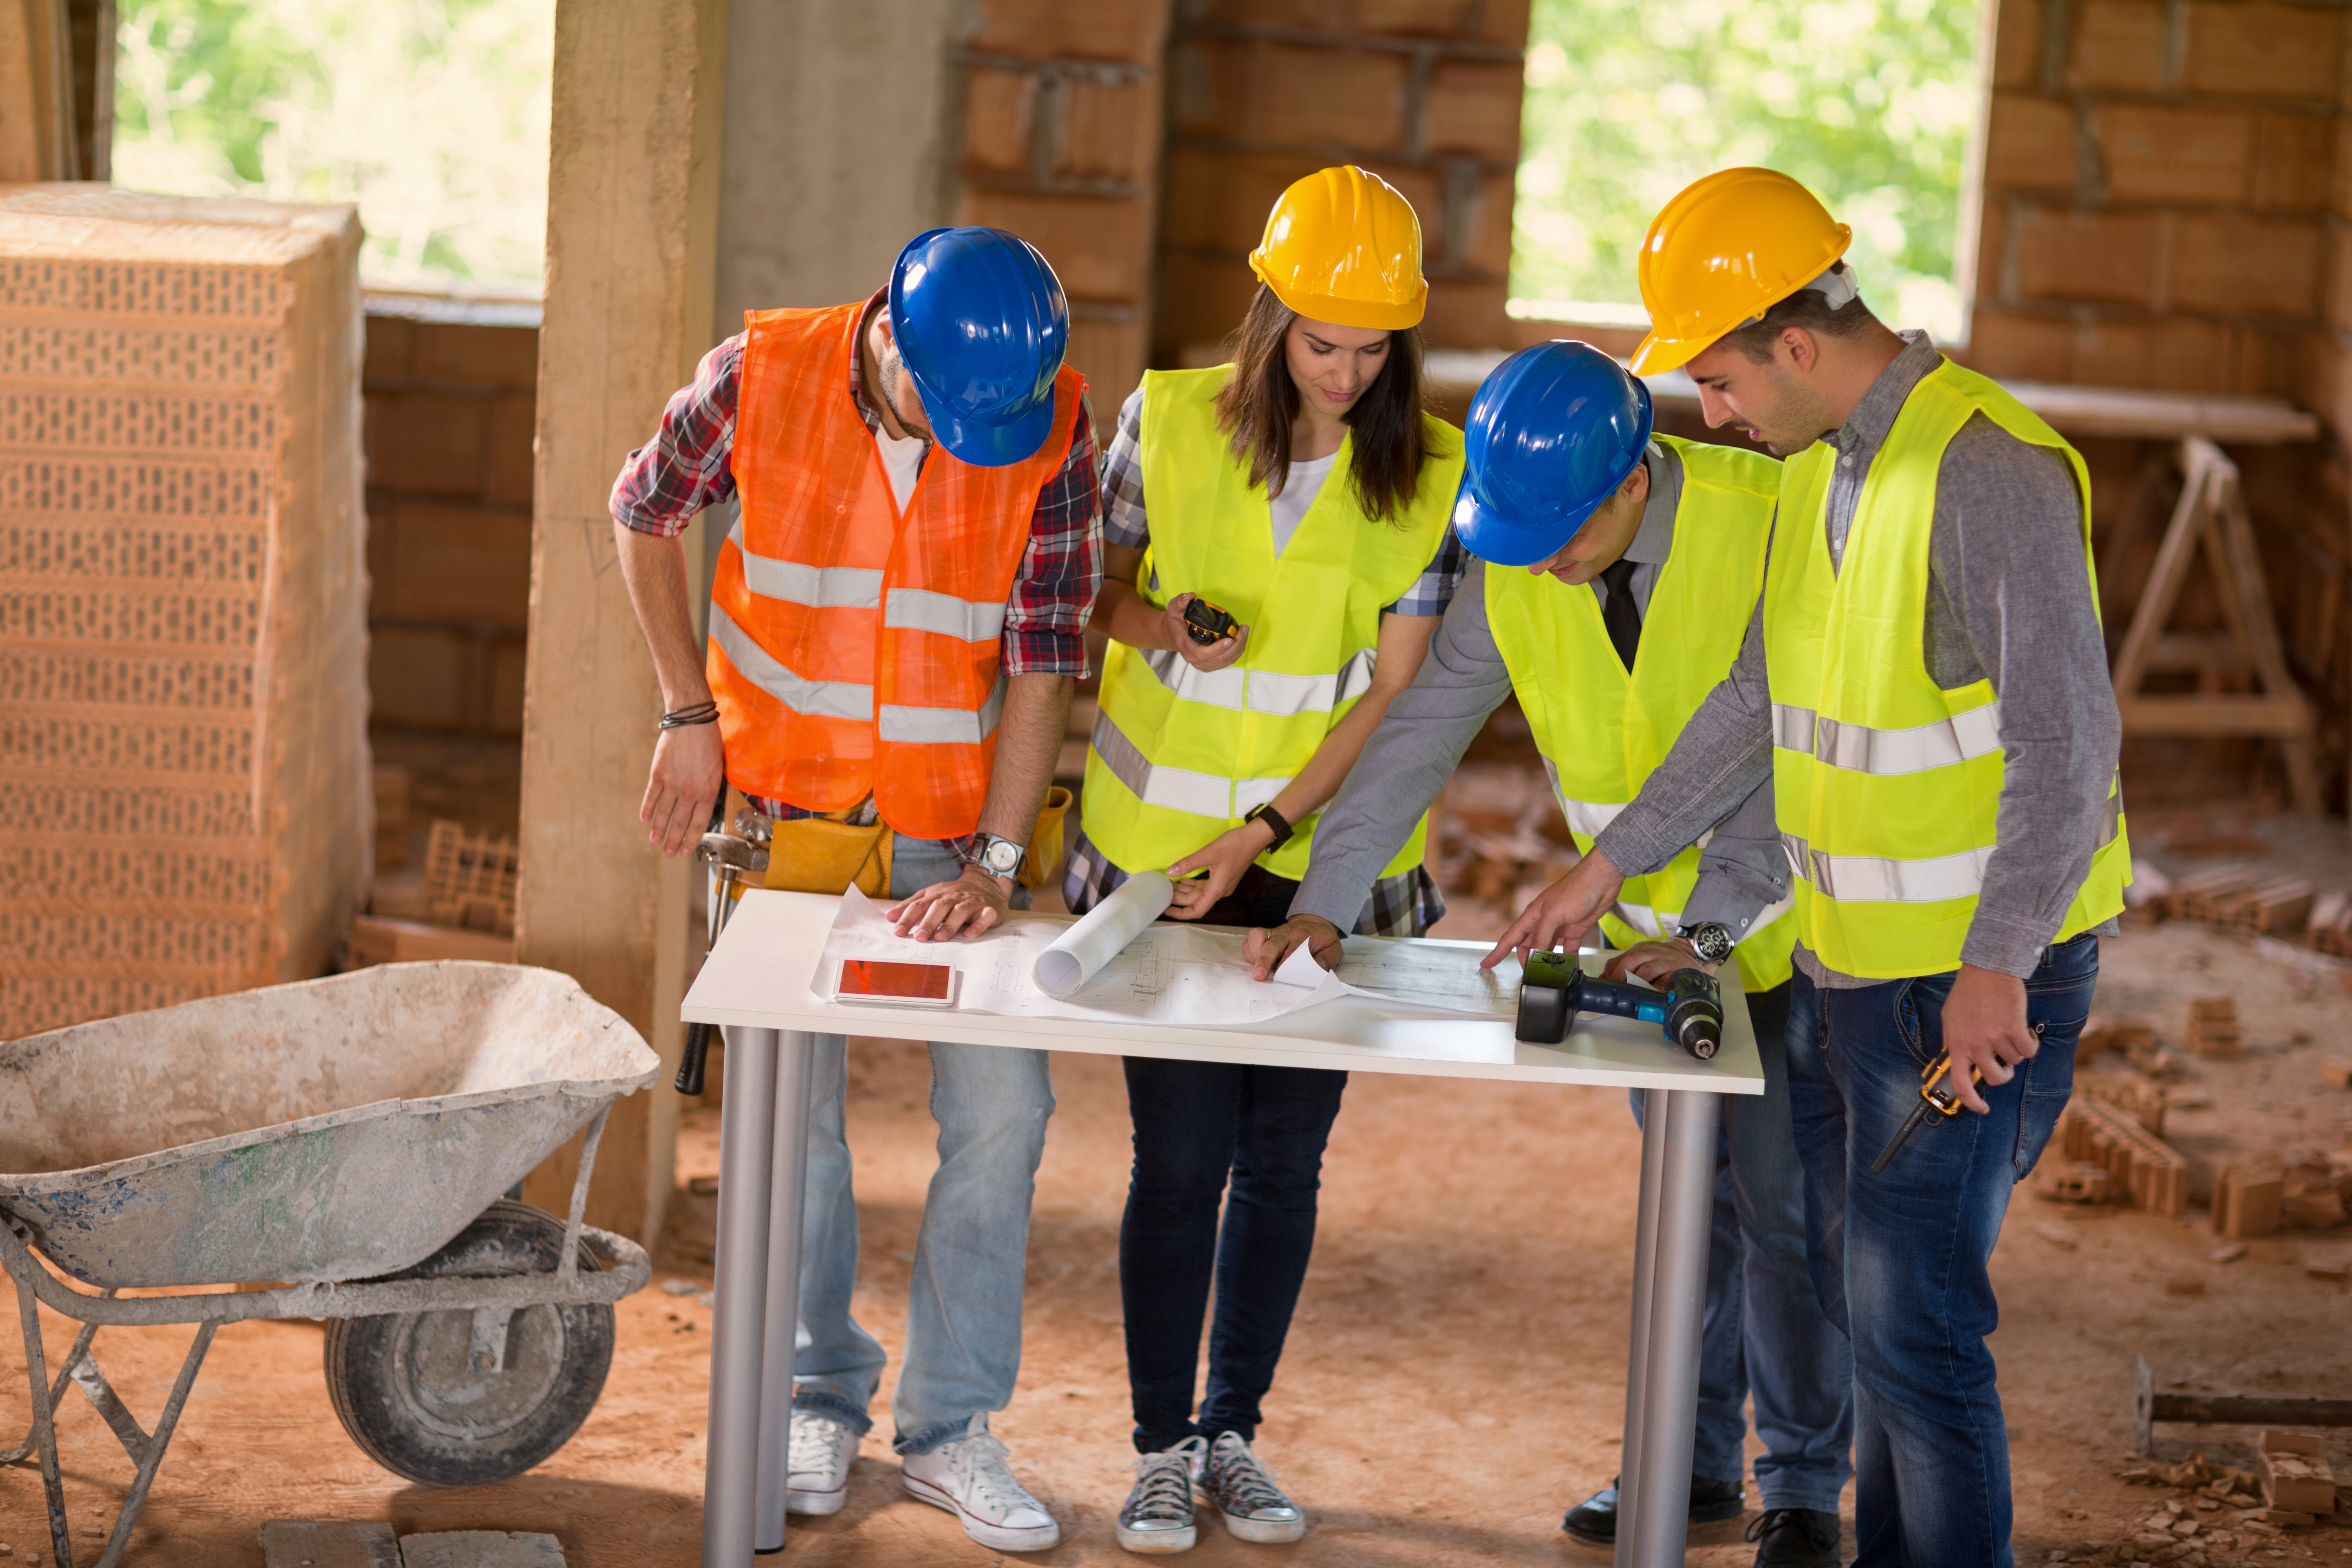 Experienced architect explain details of construction plan to colleagues at building site